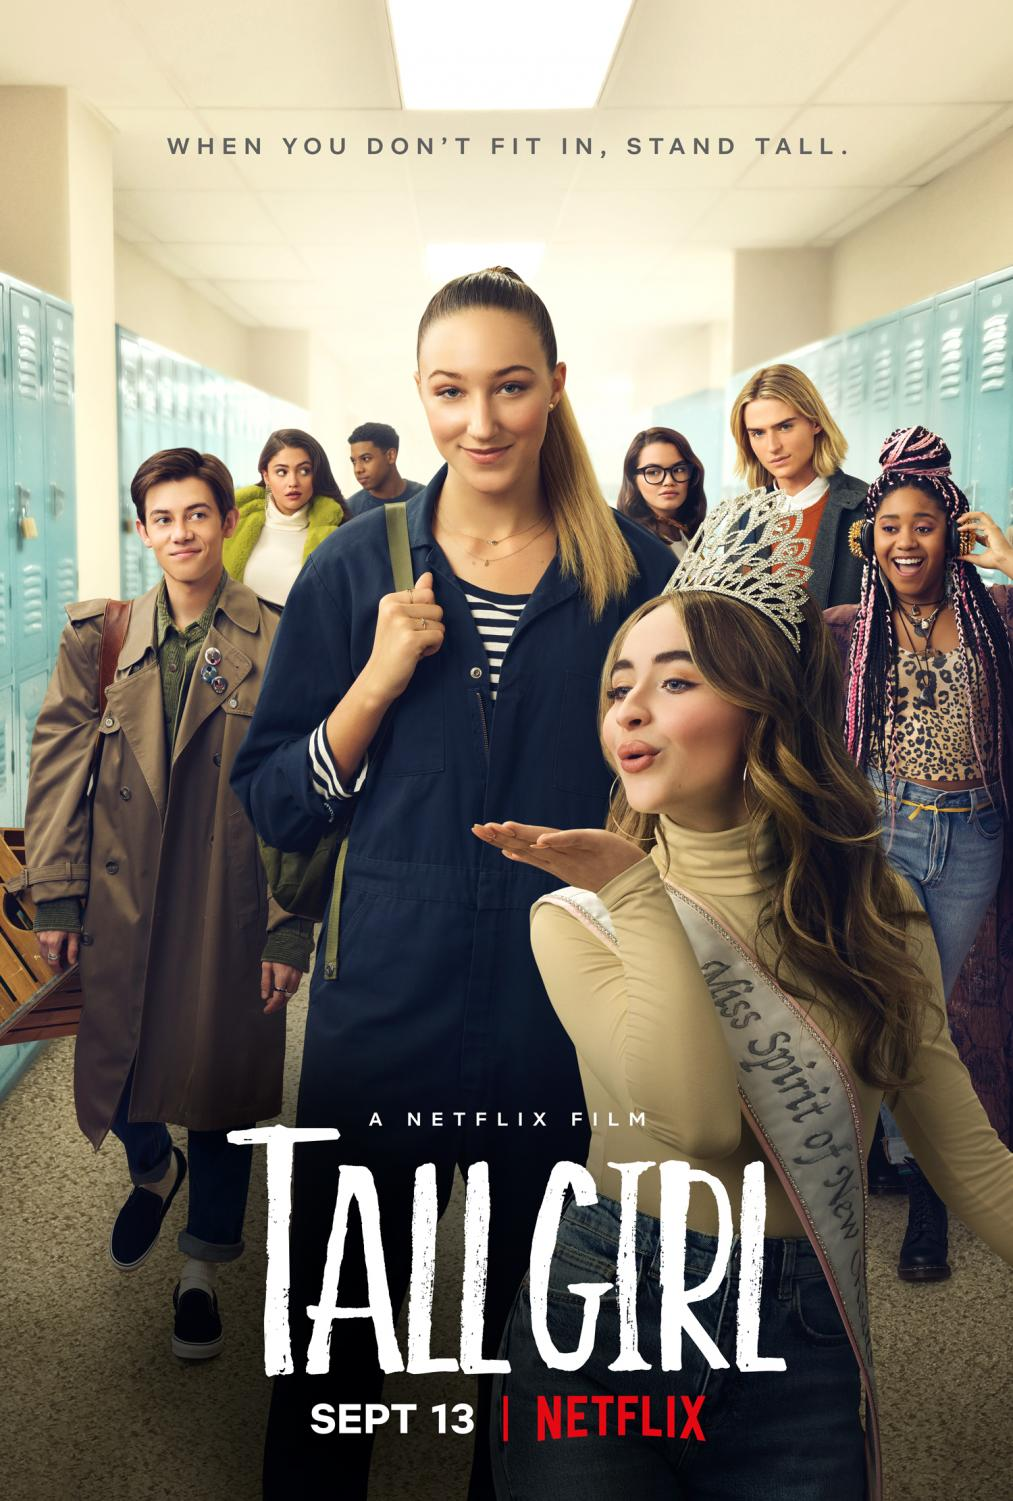 The Netflix film Tall Girl is spearheaded by six foot newcomer actress Ava Michelle.